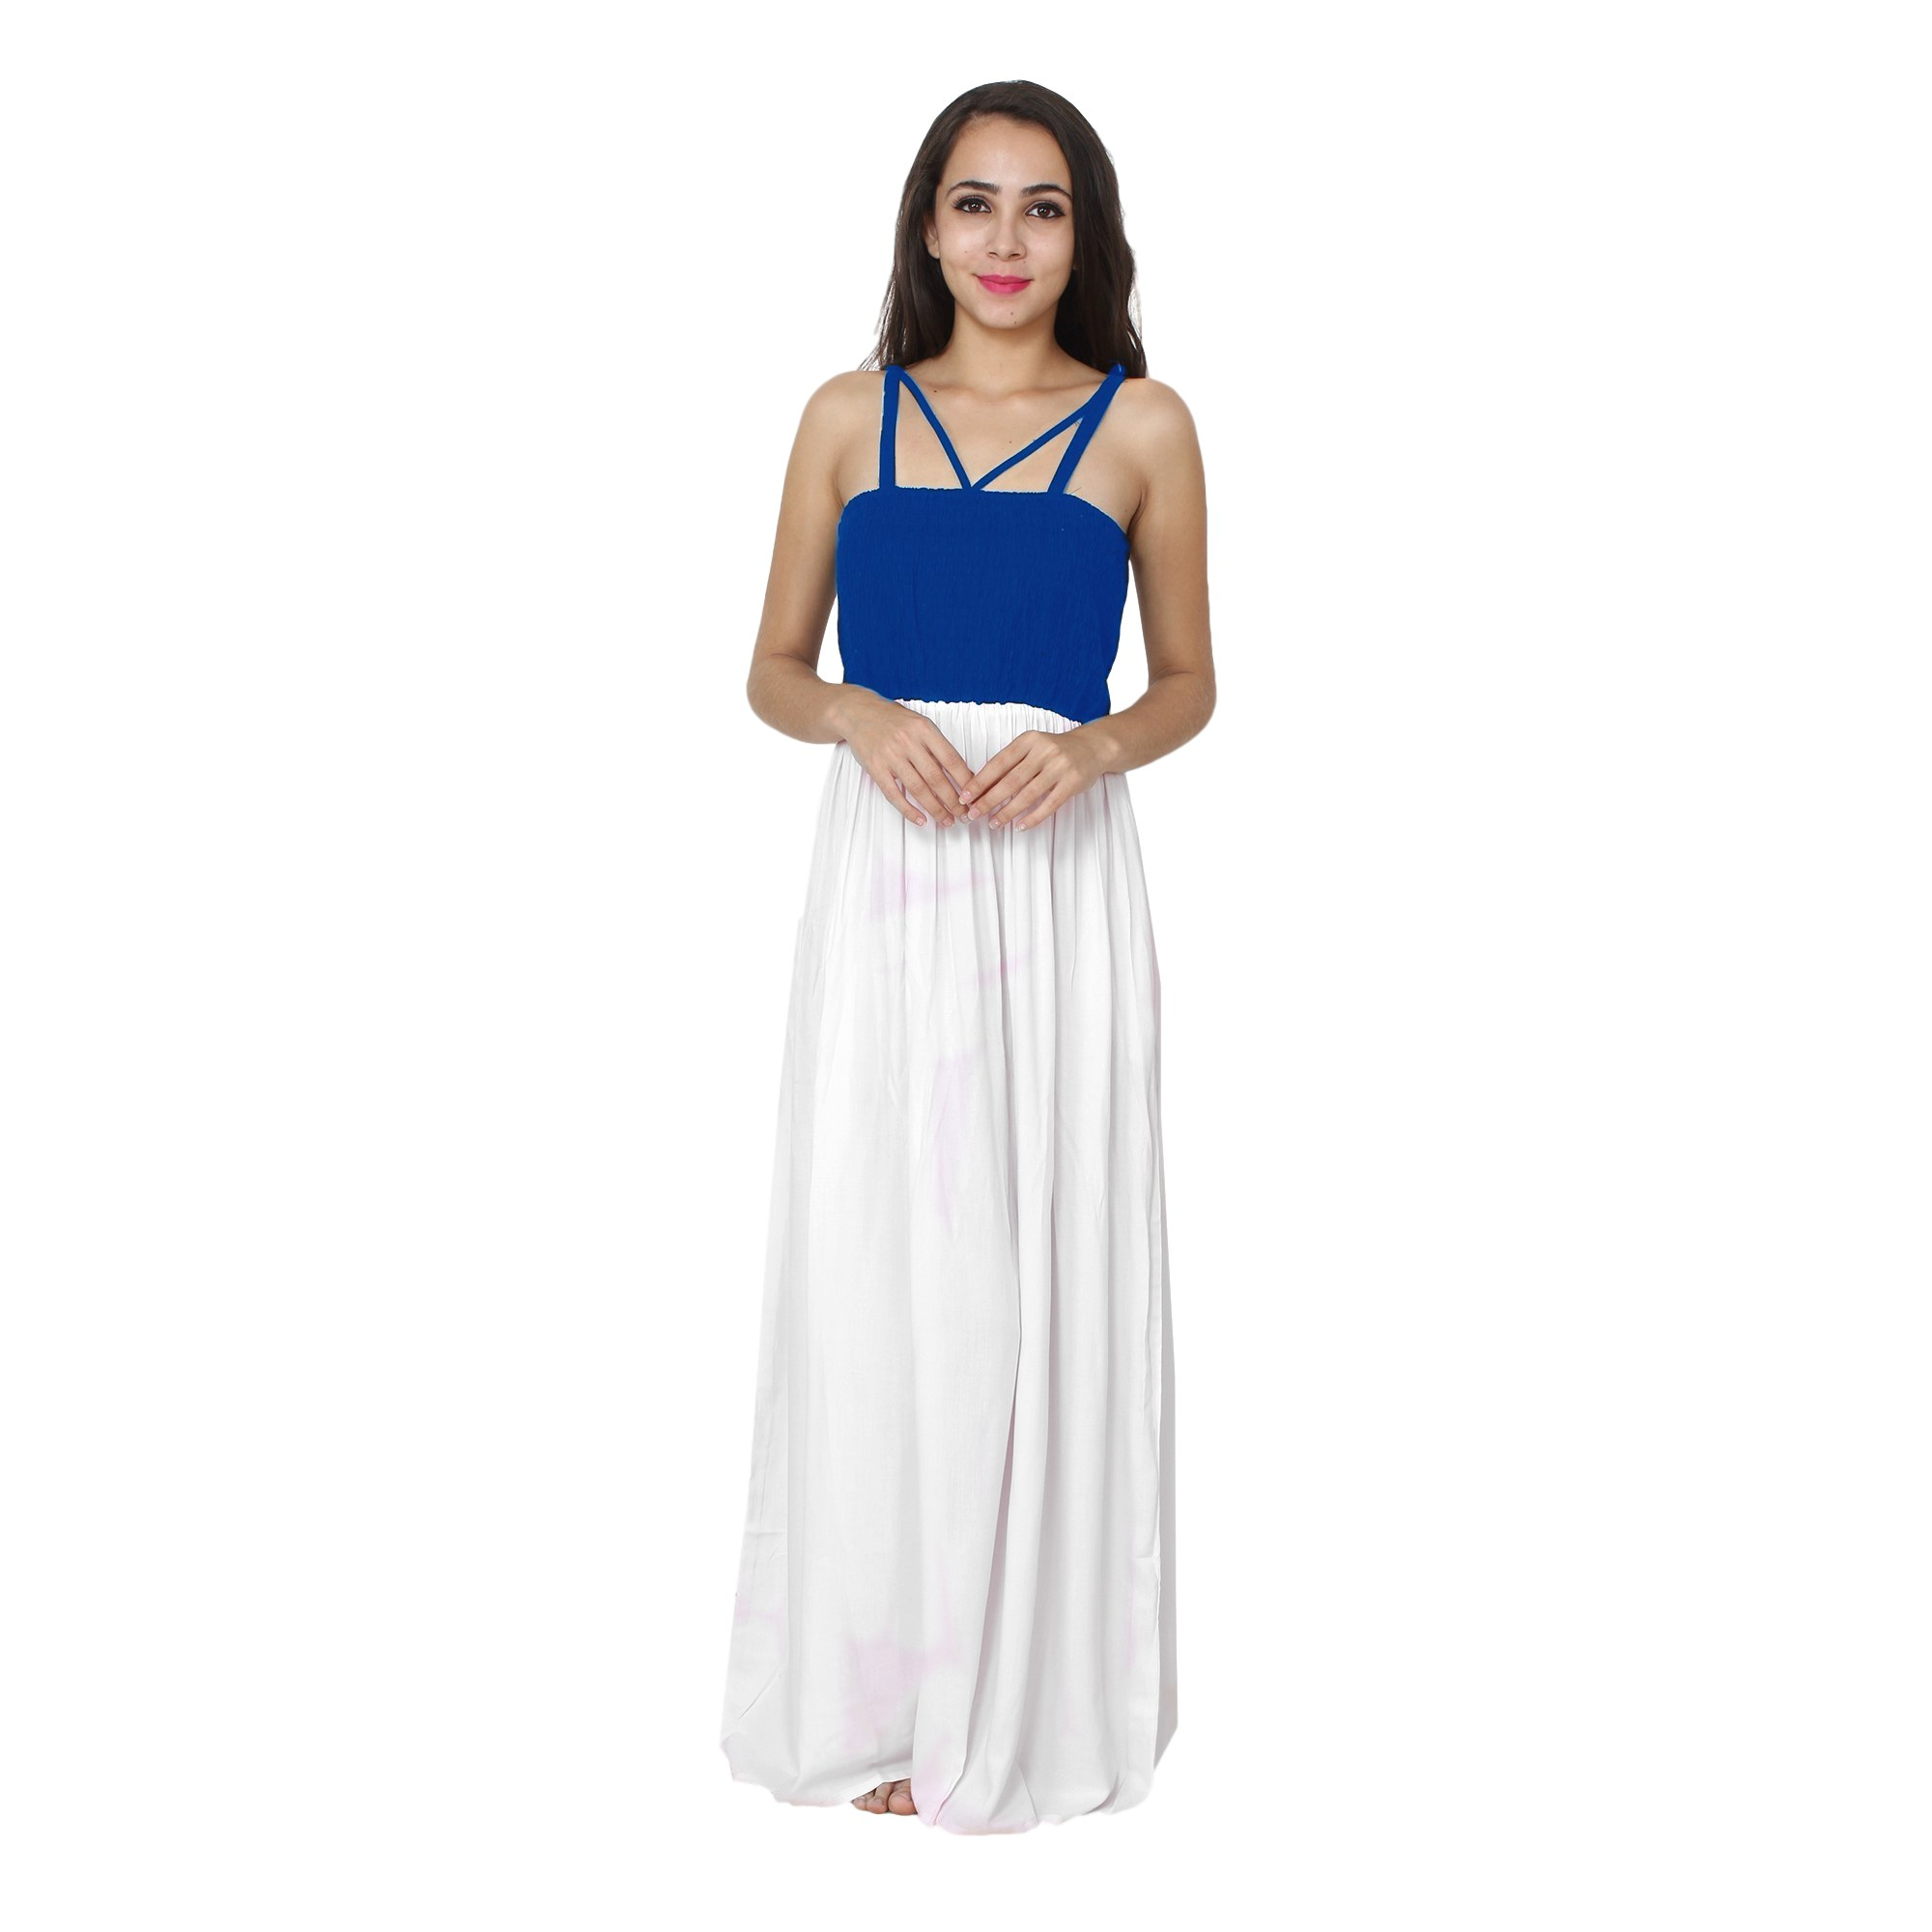 Embroidered Blouson Maxi Dress in Turquoise:White